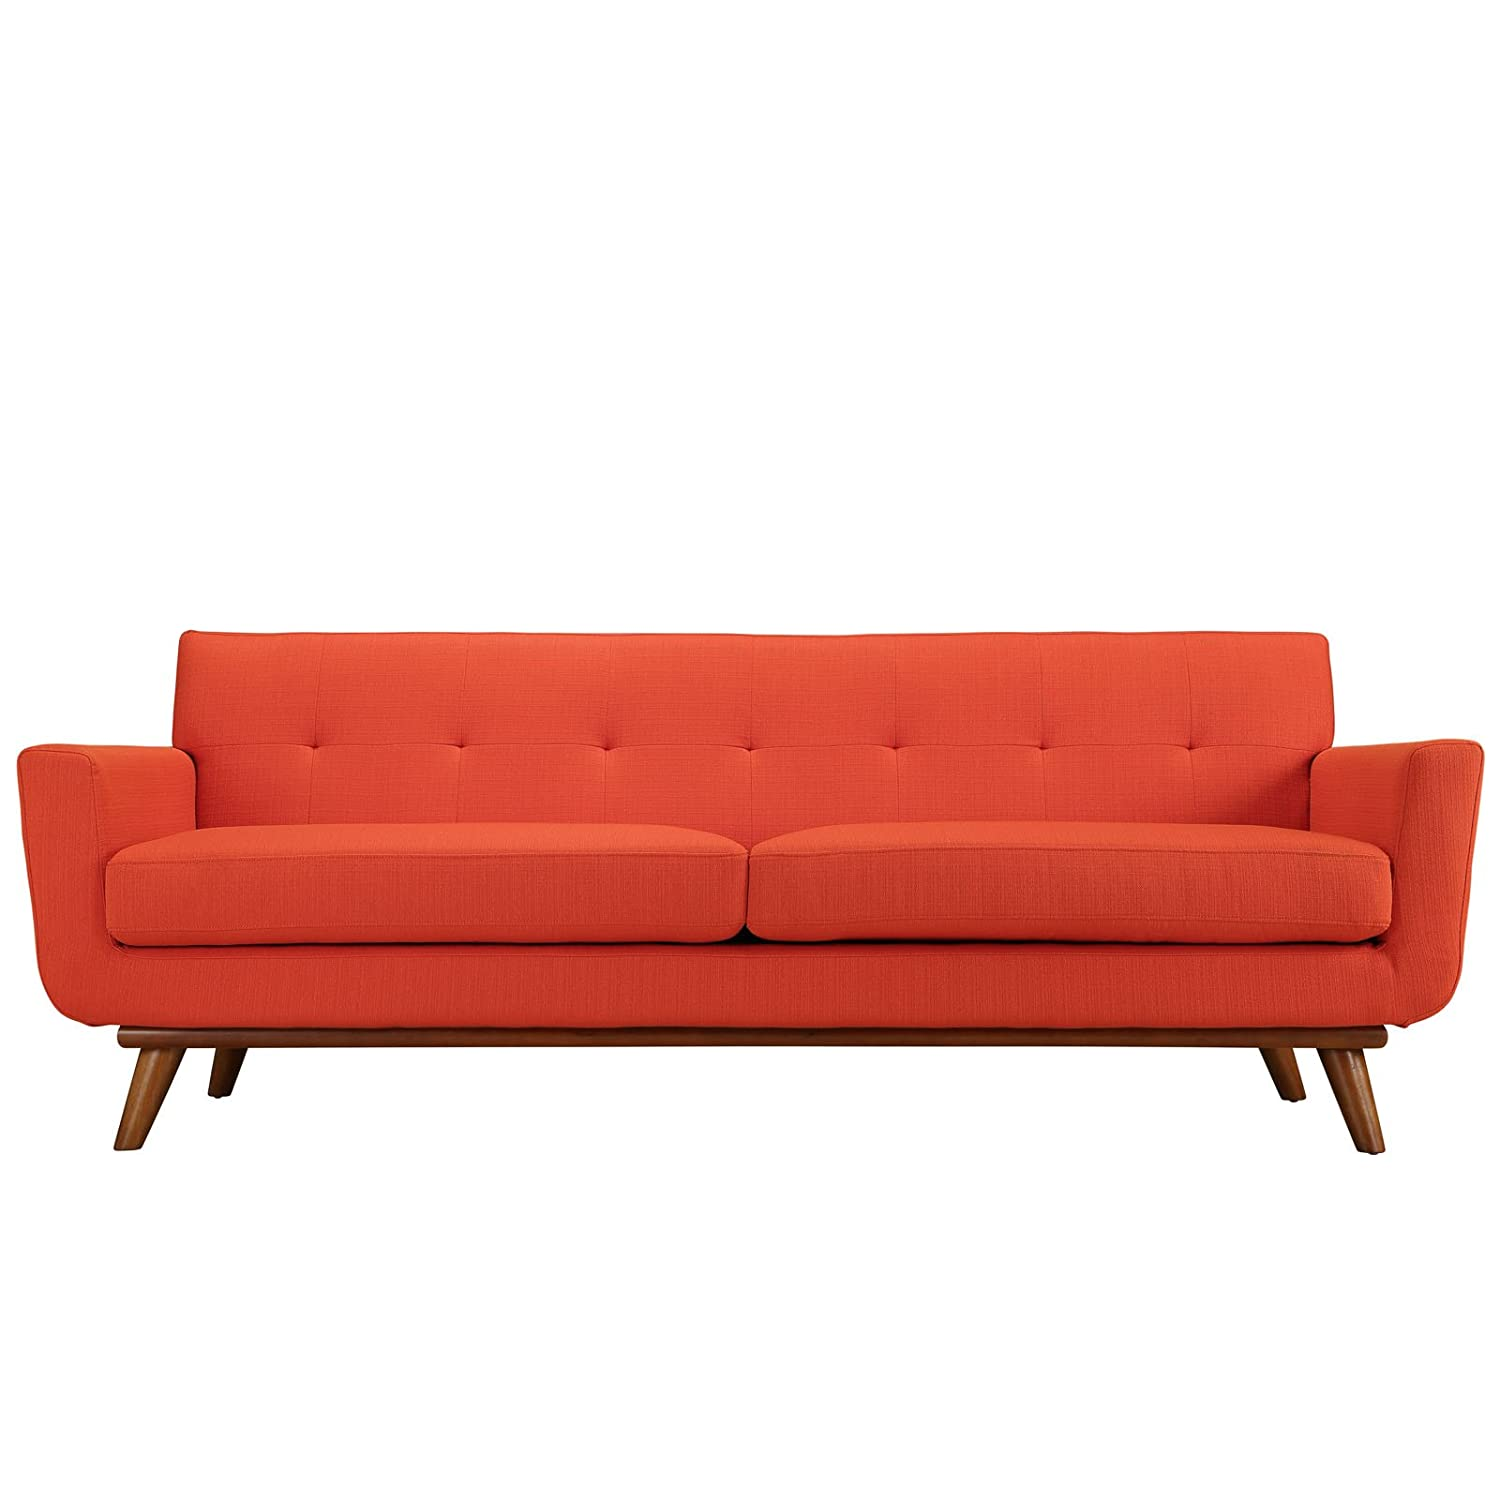 loveseat and image styling modern of maxwells for tacoma blog room red living couch